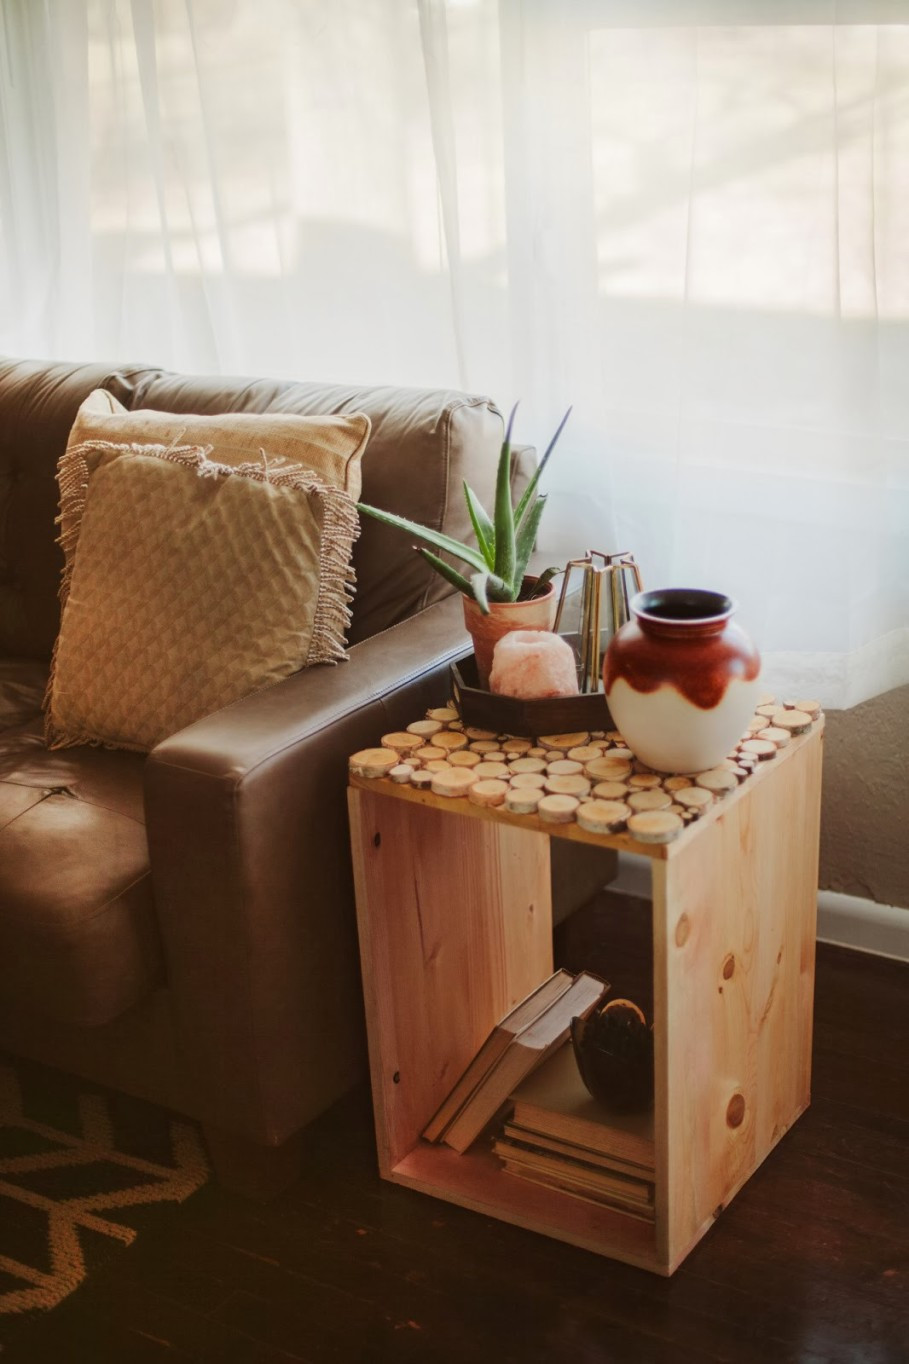 Best ideas about DIY Wood Table . Save or Pin furniture Simple DIY Wood Crate for Versatile Furniture Now.